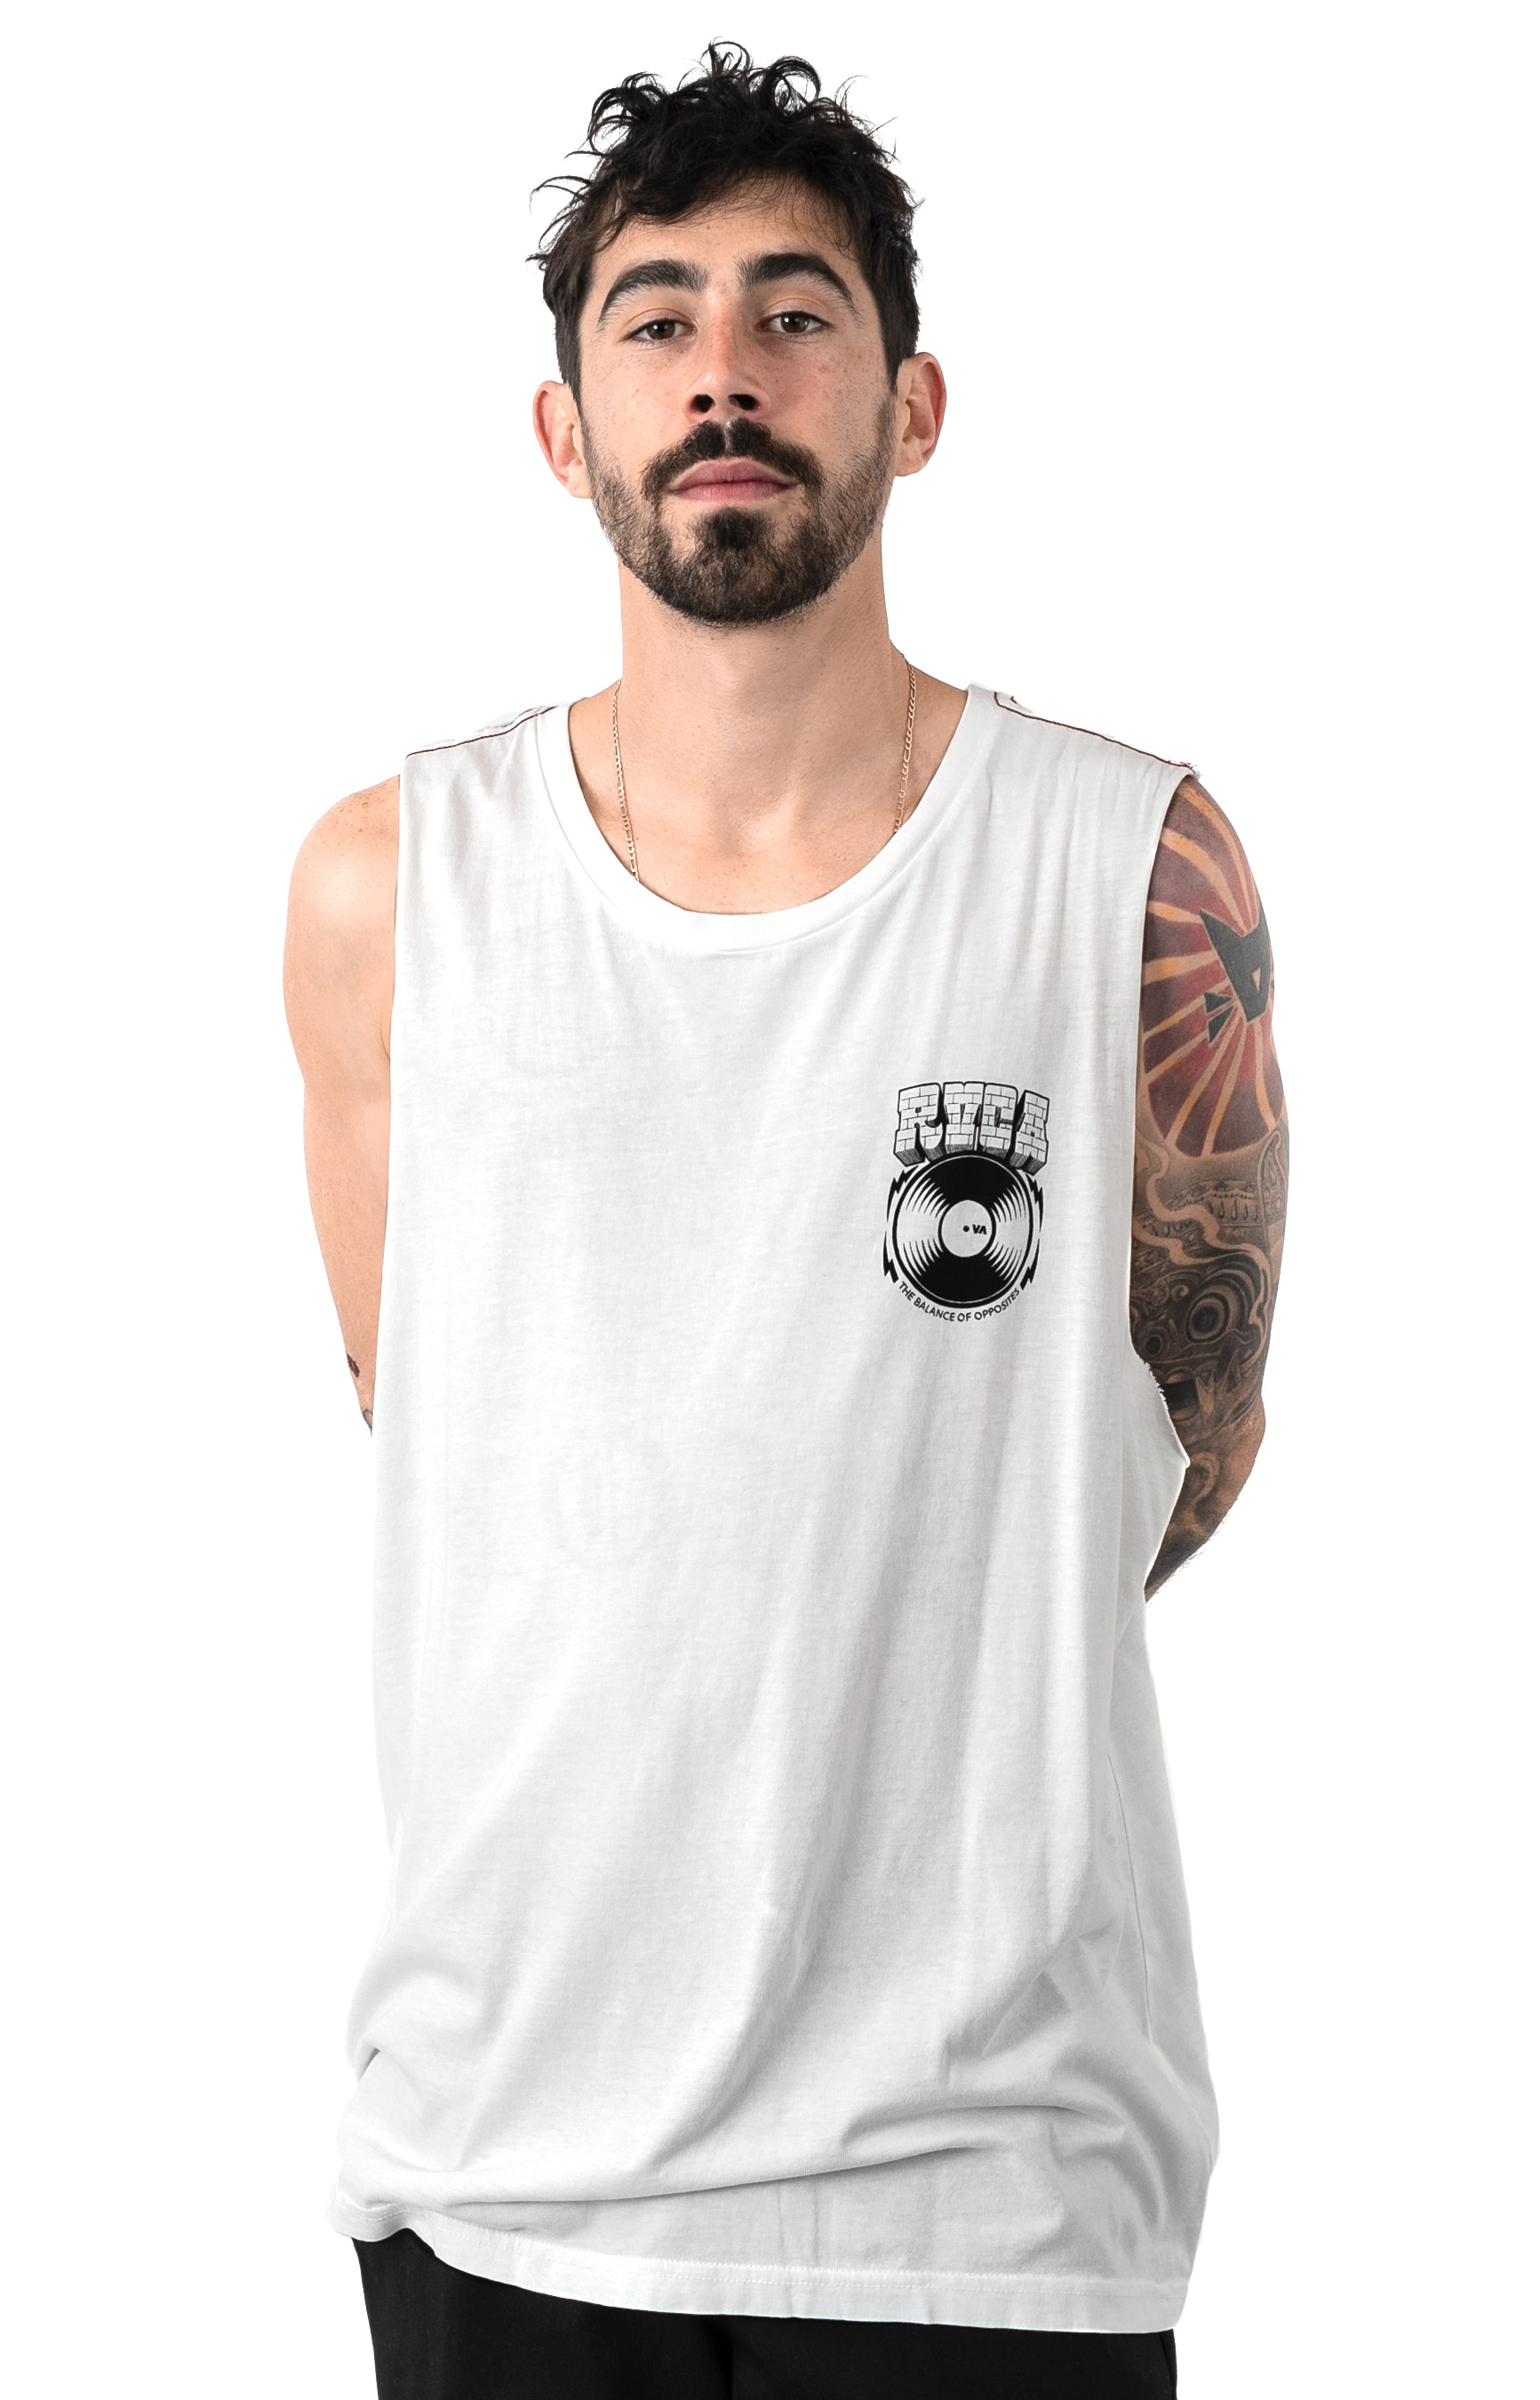 Cobra Muscle Tank Top - Antique White  2